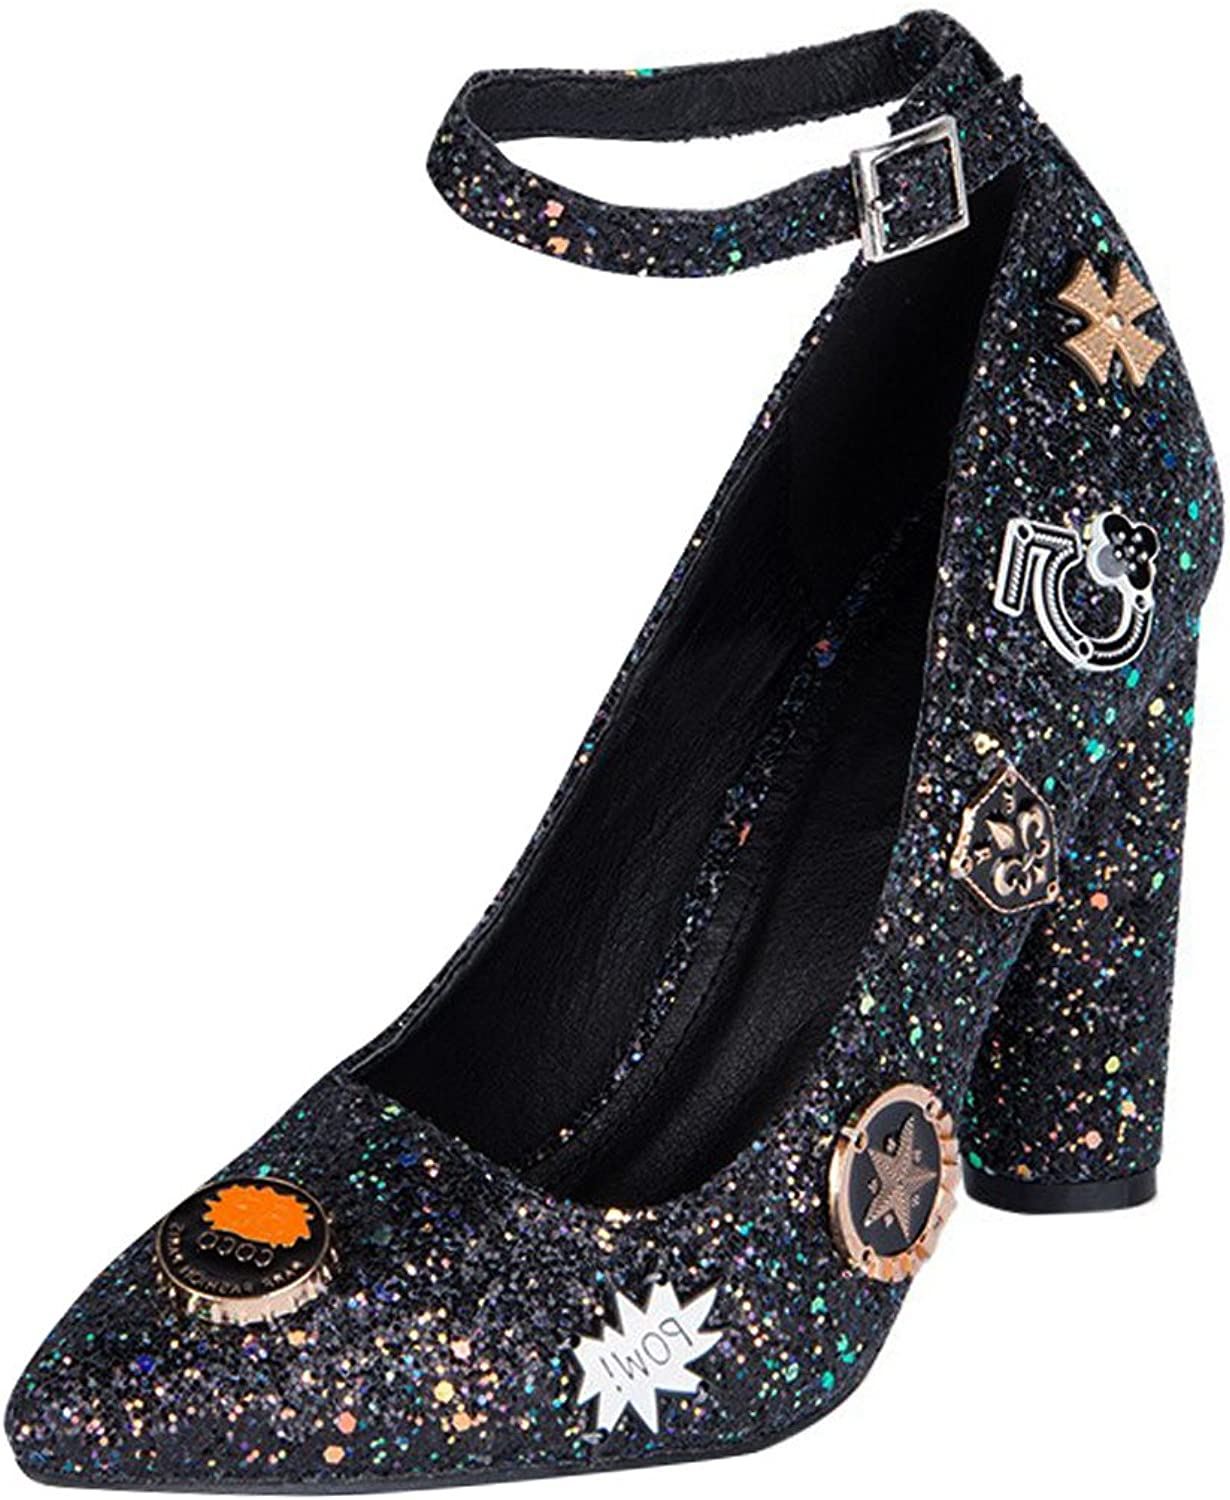 CAPE ROBBIN Womens Pointy Toe Glitter Embellished Chunky High Heel Ankle Strap Pump shoes